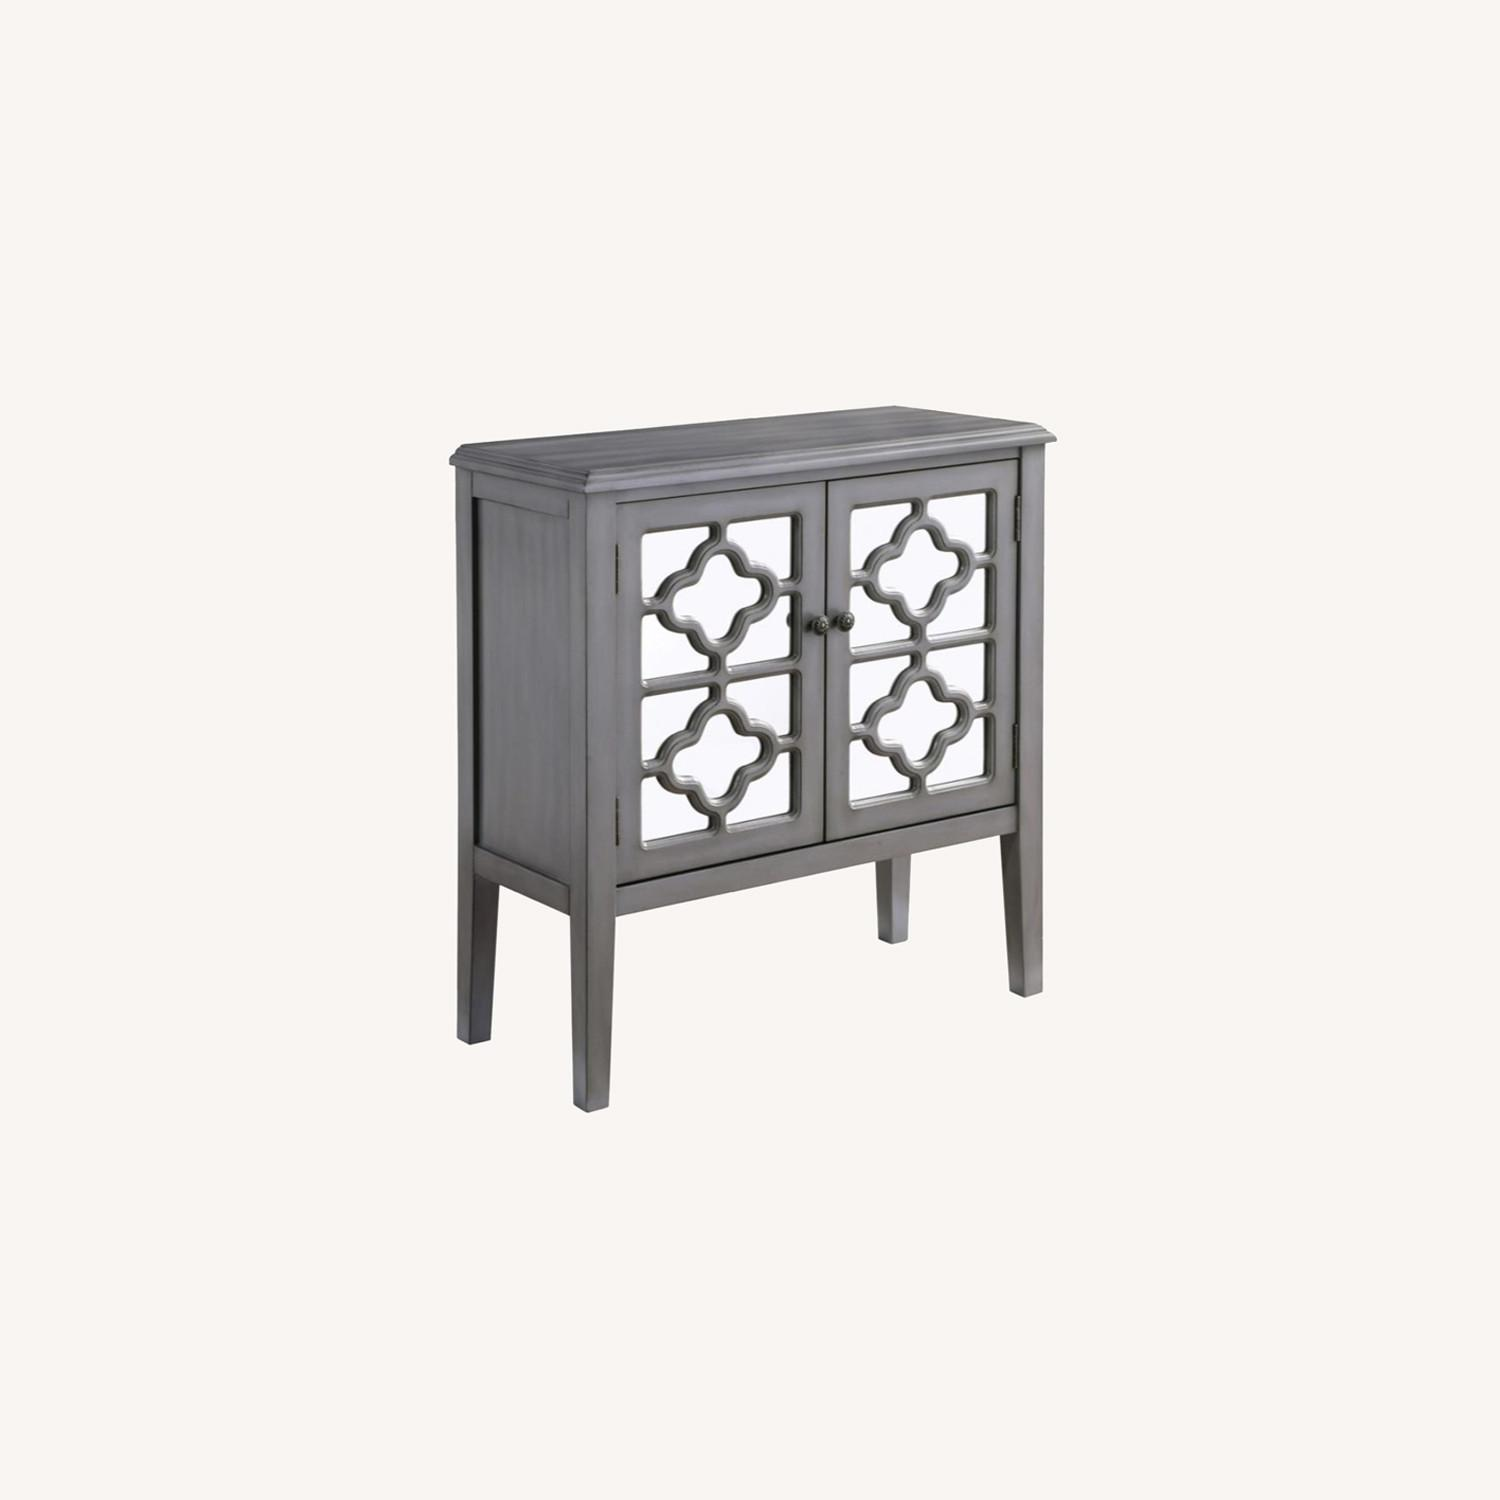 Accent Cabinet In Grey Hardwood Finish - image-3